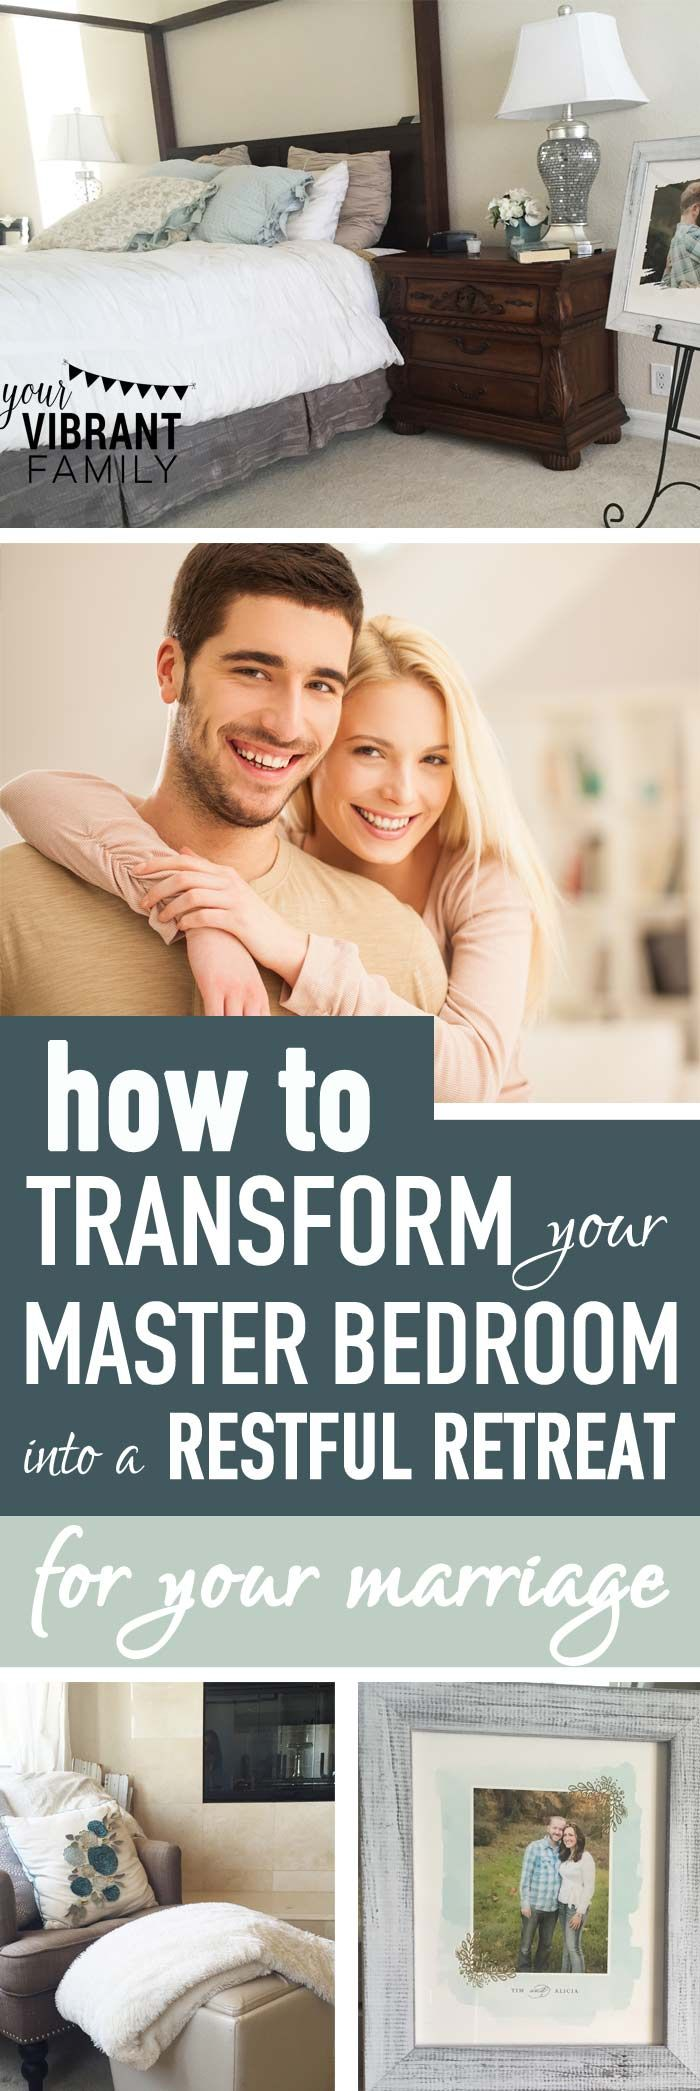 Master Bedroom Retreat 17 Best Ideas About Bedroom Retreat On Pinterest Master Bedroom